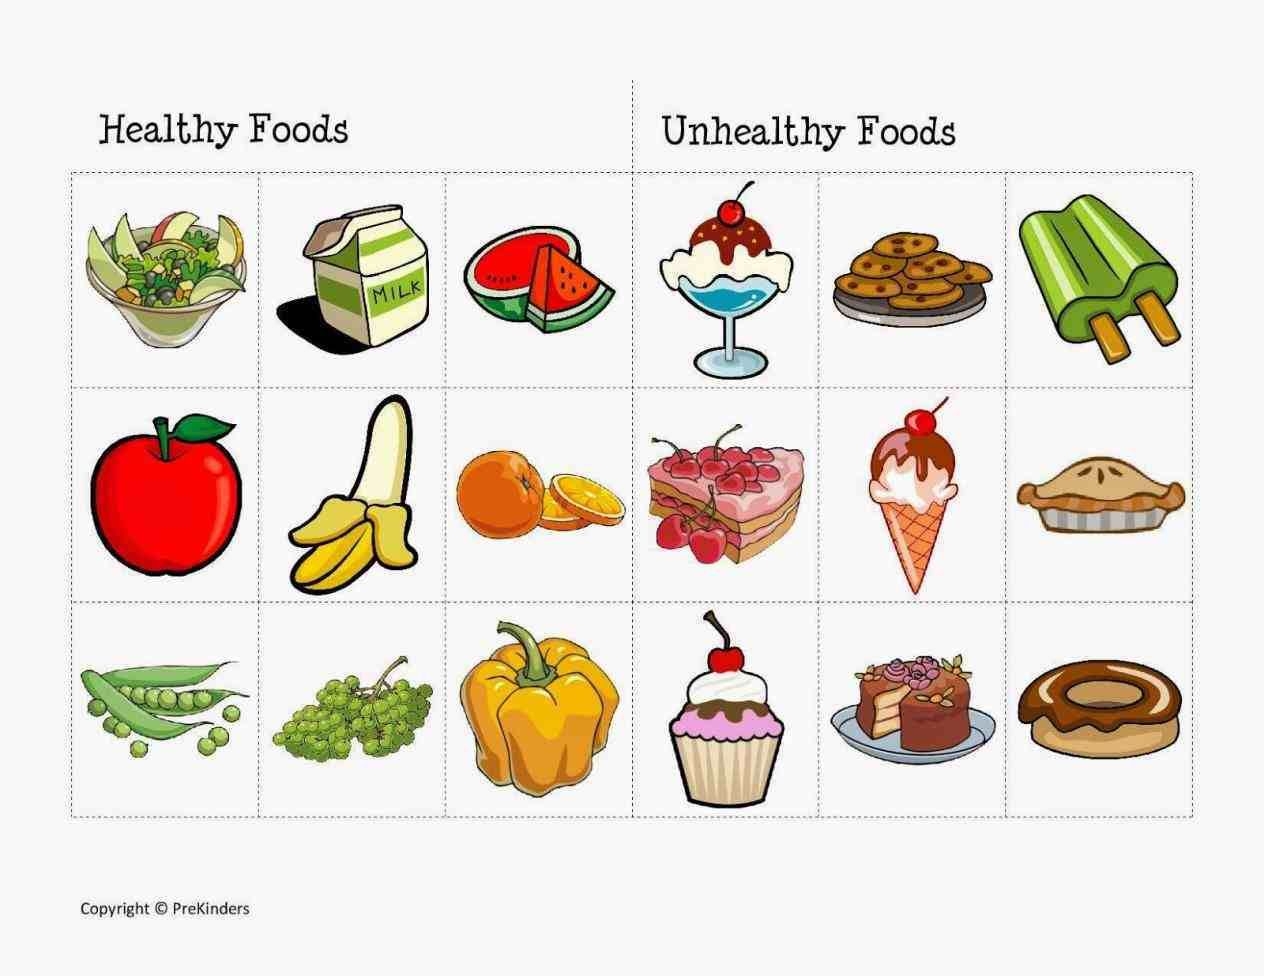 S Unhealthy Food Vs Healthy Food Clipart Worksheet